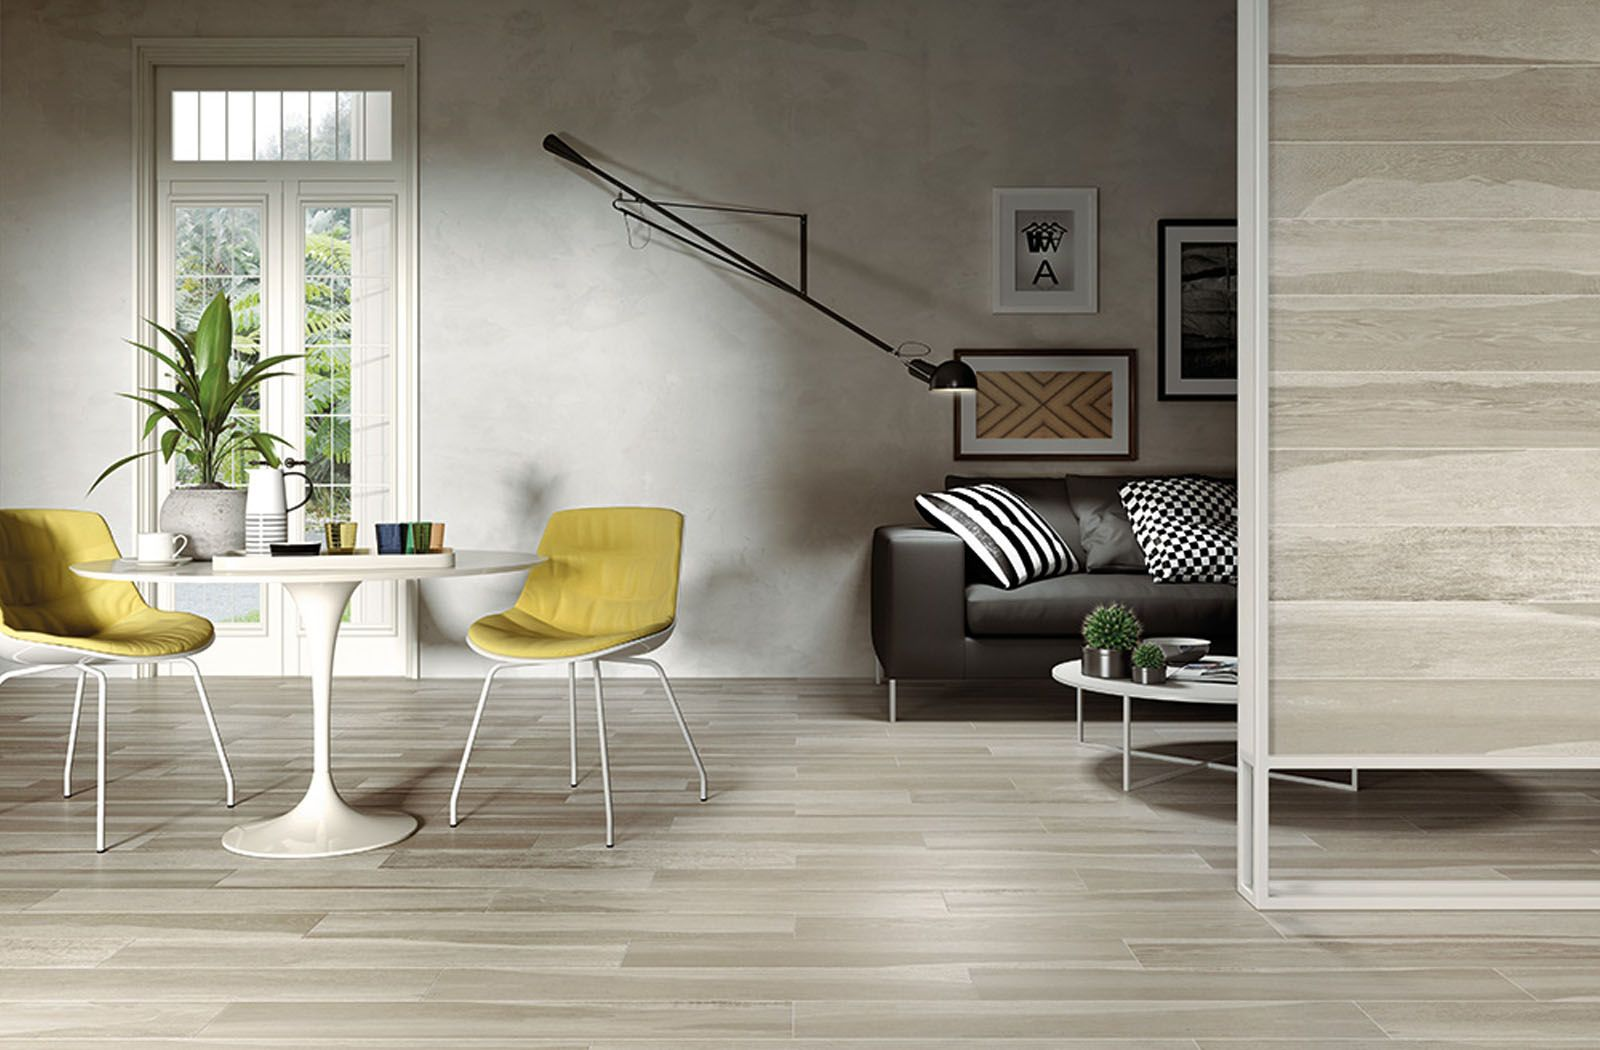 Dining Space In Living Room Floor Tiles Indonesian Wood From Campani Ceramica Dining Room Design Timber Tiles Wood Tile